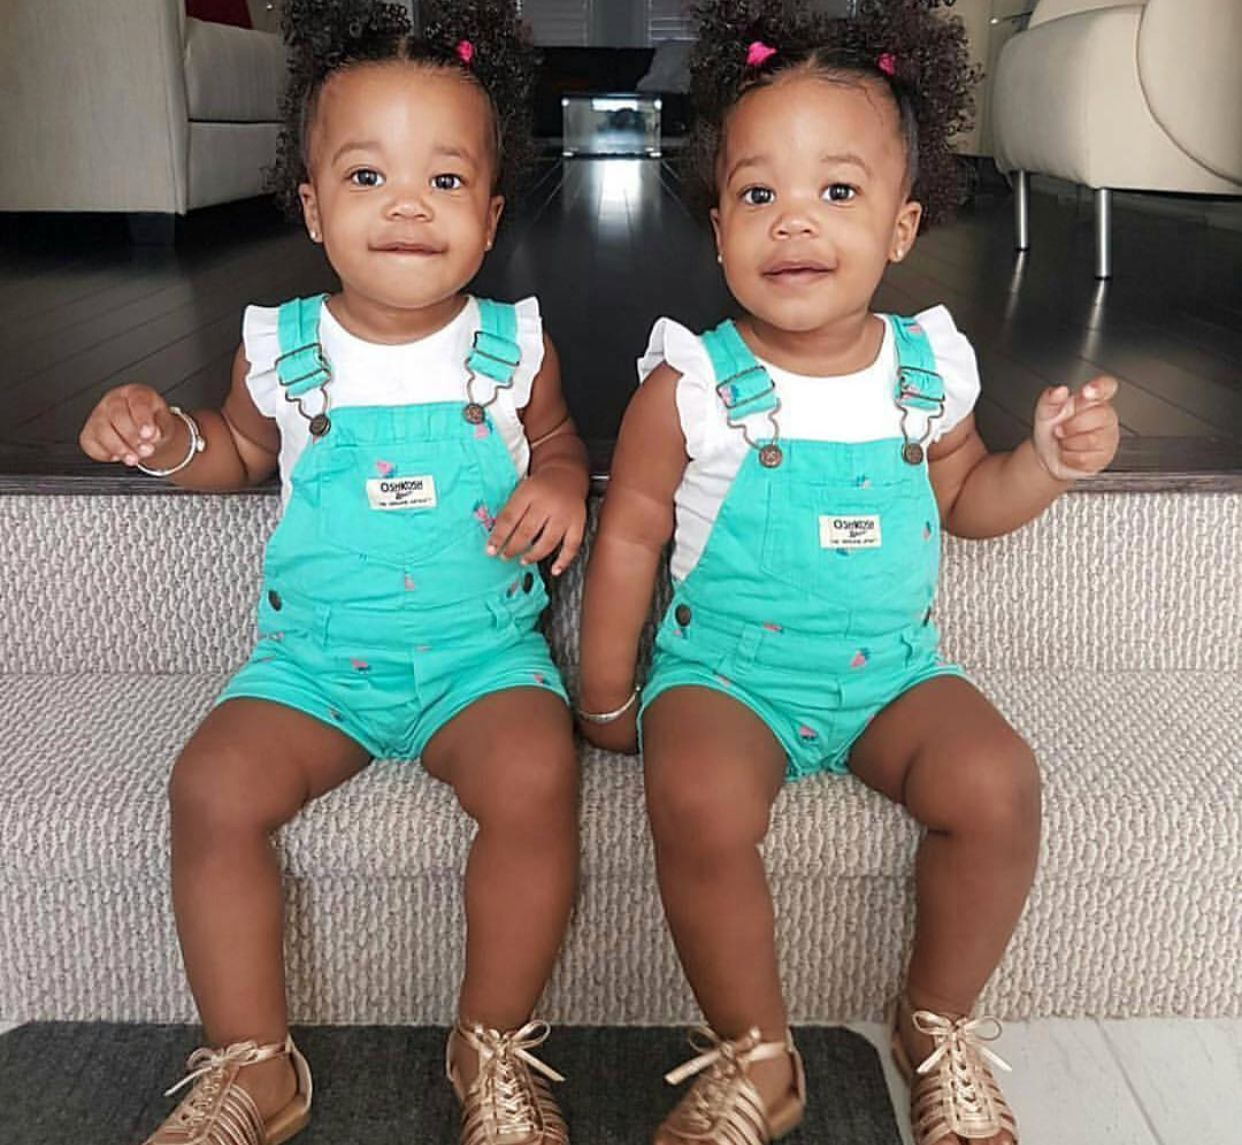 Black babies · follow for more kaycedes cute little girls outfits twin outfits girl outfits